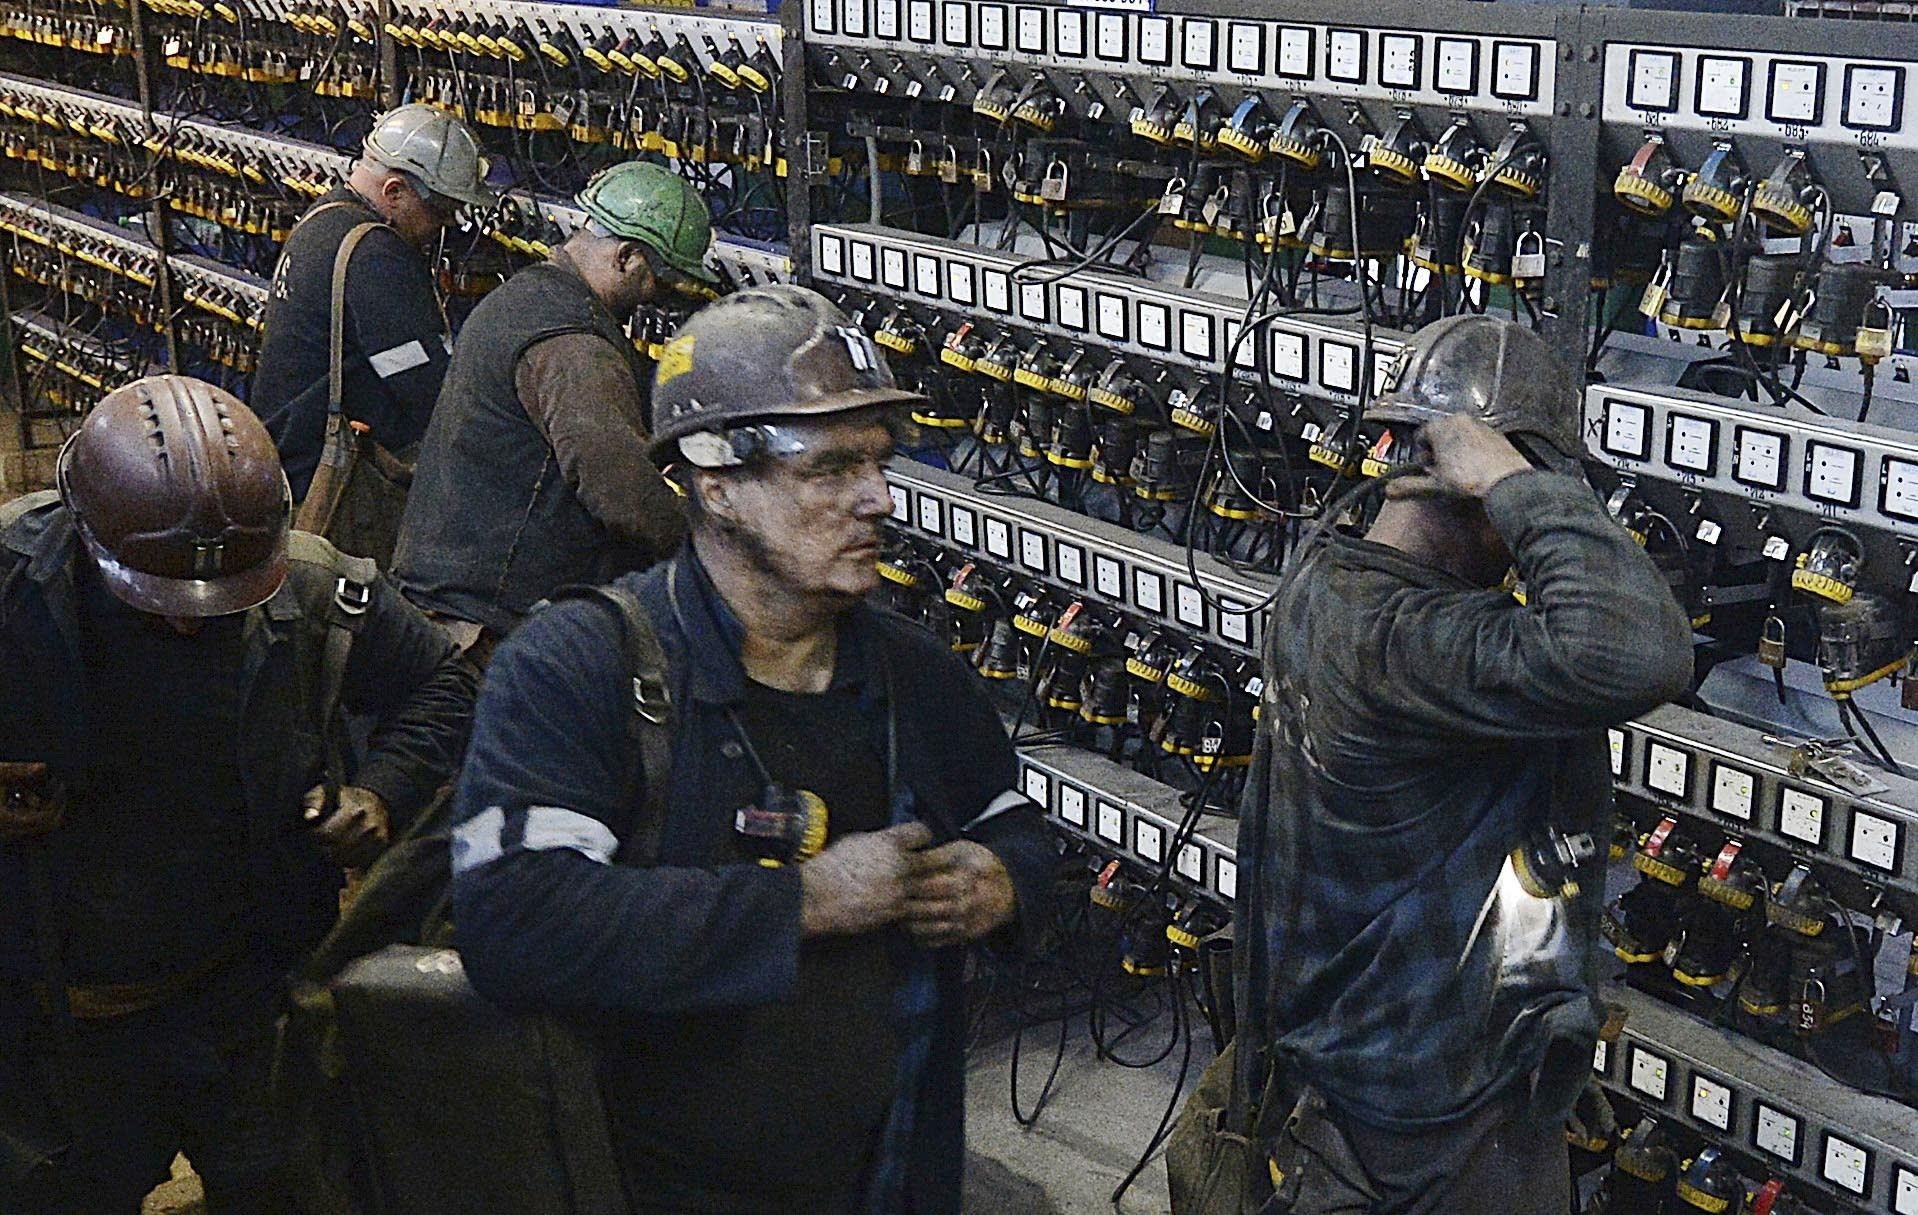 FILE - In this Nov. 21, 2018, file photo, miners put away their equipment after an underground shift at the Wujek coal mine in Katowice, in Poland's southern mining region of Silesia. The coronavirus has ripped through Poland's coal mines, where men descend deep underground in tightly packed elevators and work shoulder-to-shoulder. The virus hot spots, centered in the southern Silesia region, have paralyzed an already-troubled industry, forcing many to stay home from work and triggering a three-week closure of many state-run mines. (AP Photo/Czarek Sokolowski, File)